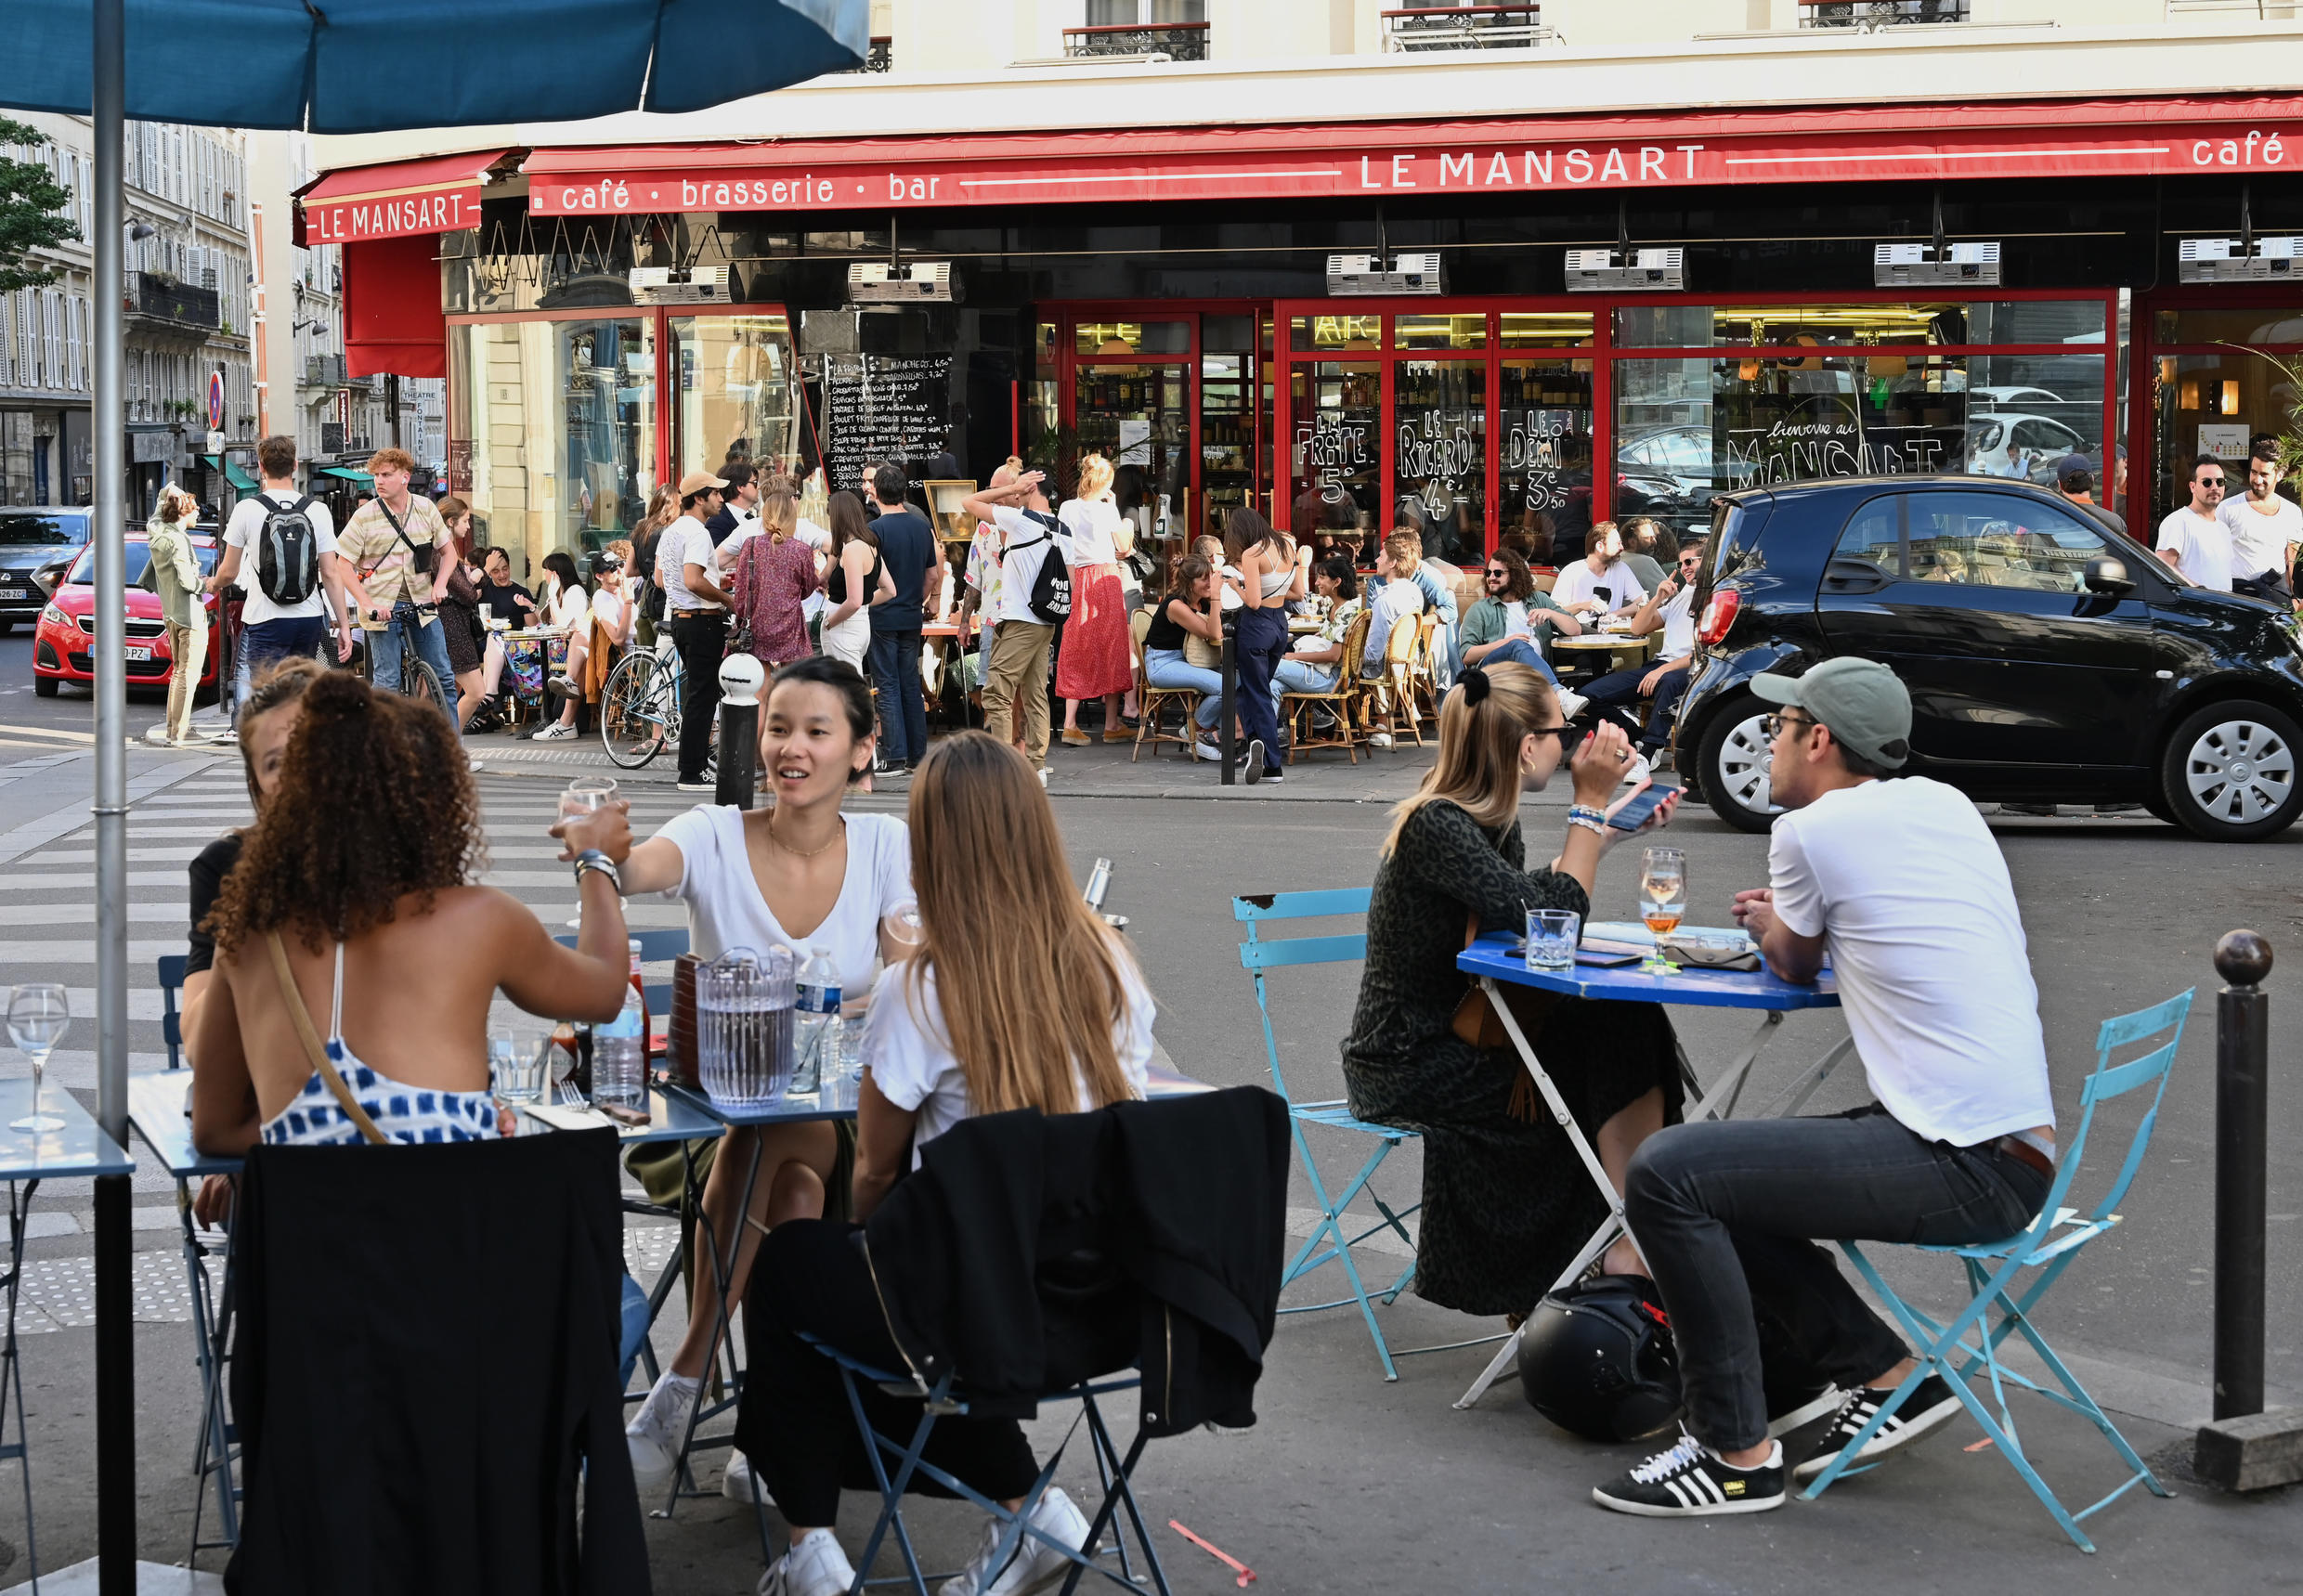 The easing of lockdowns that have allowed bars, cafes and pools to reopen has fanned hopes for a rebound in the global economy